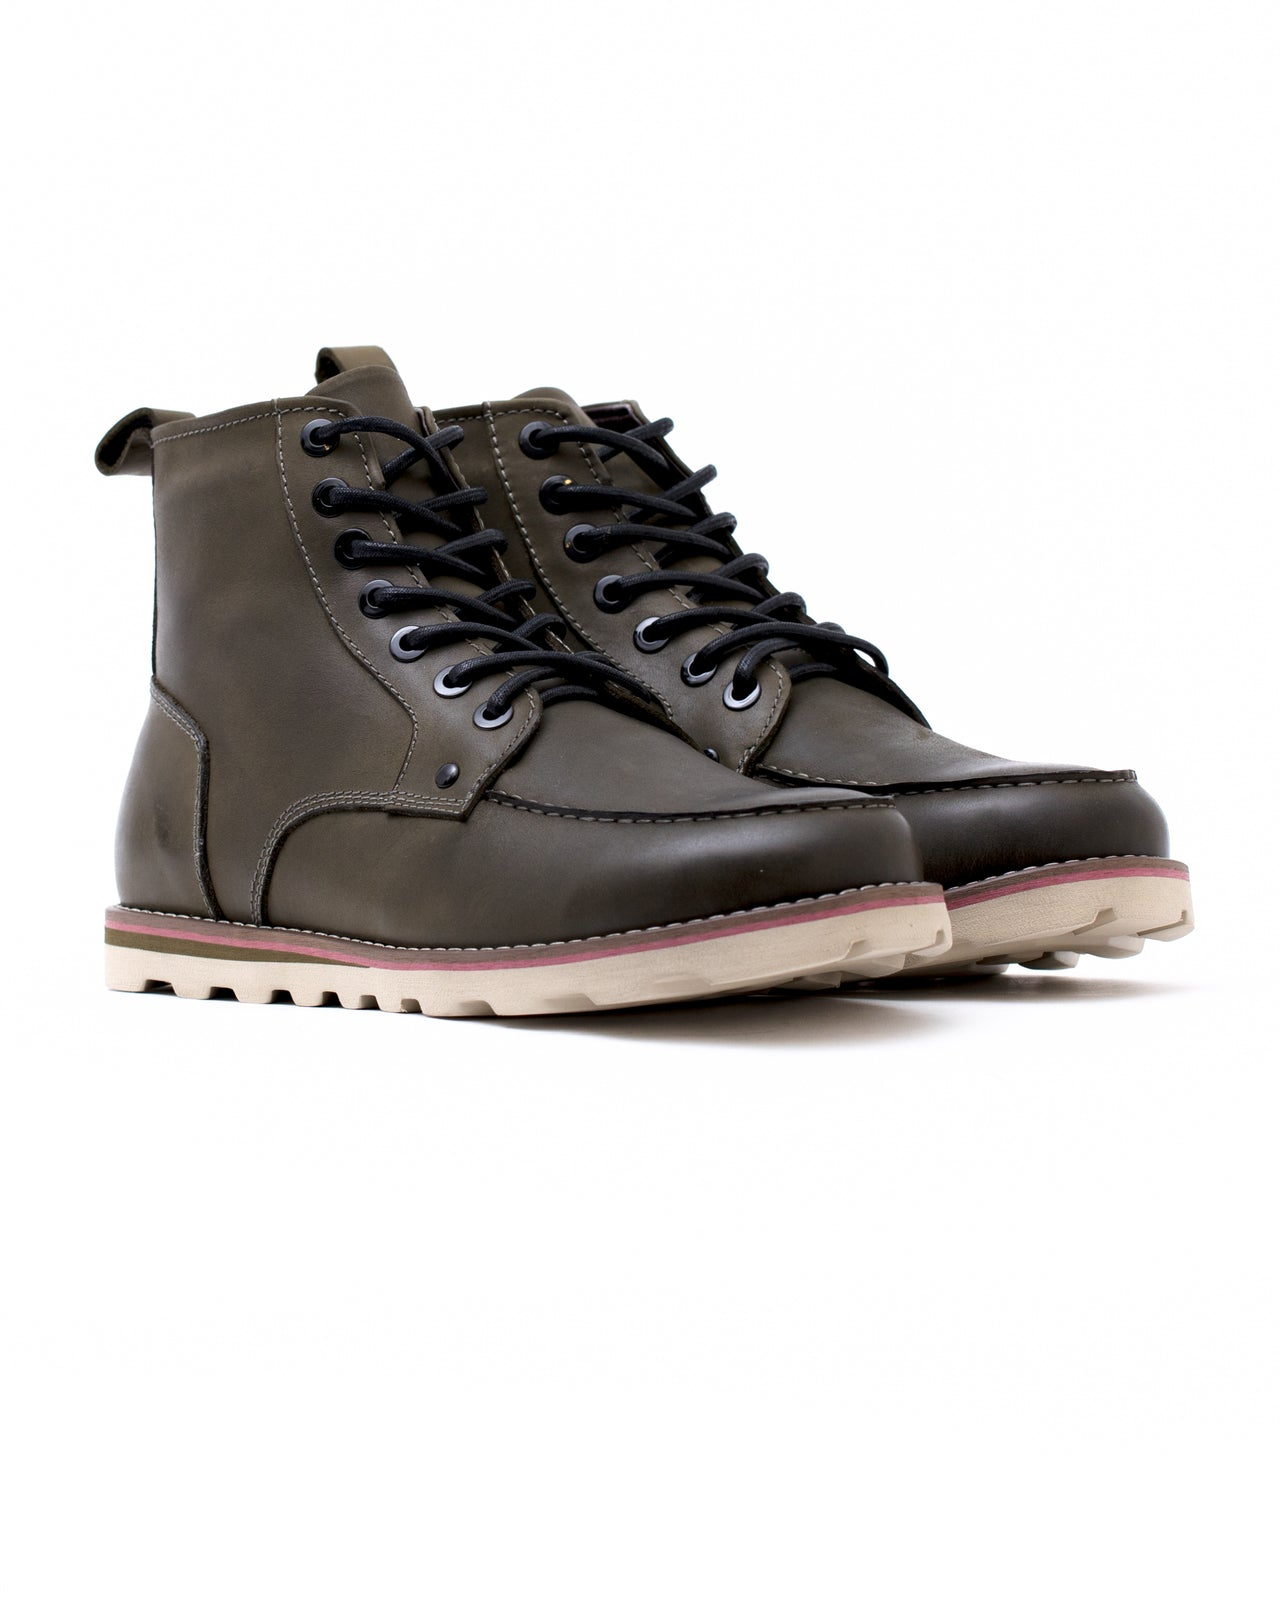 Moc Toe Boot - Color: Olive Leather | Green